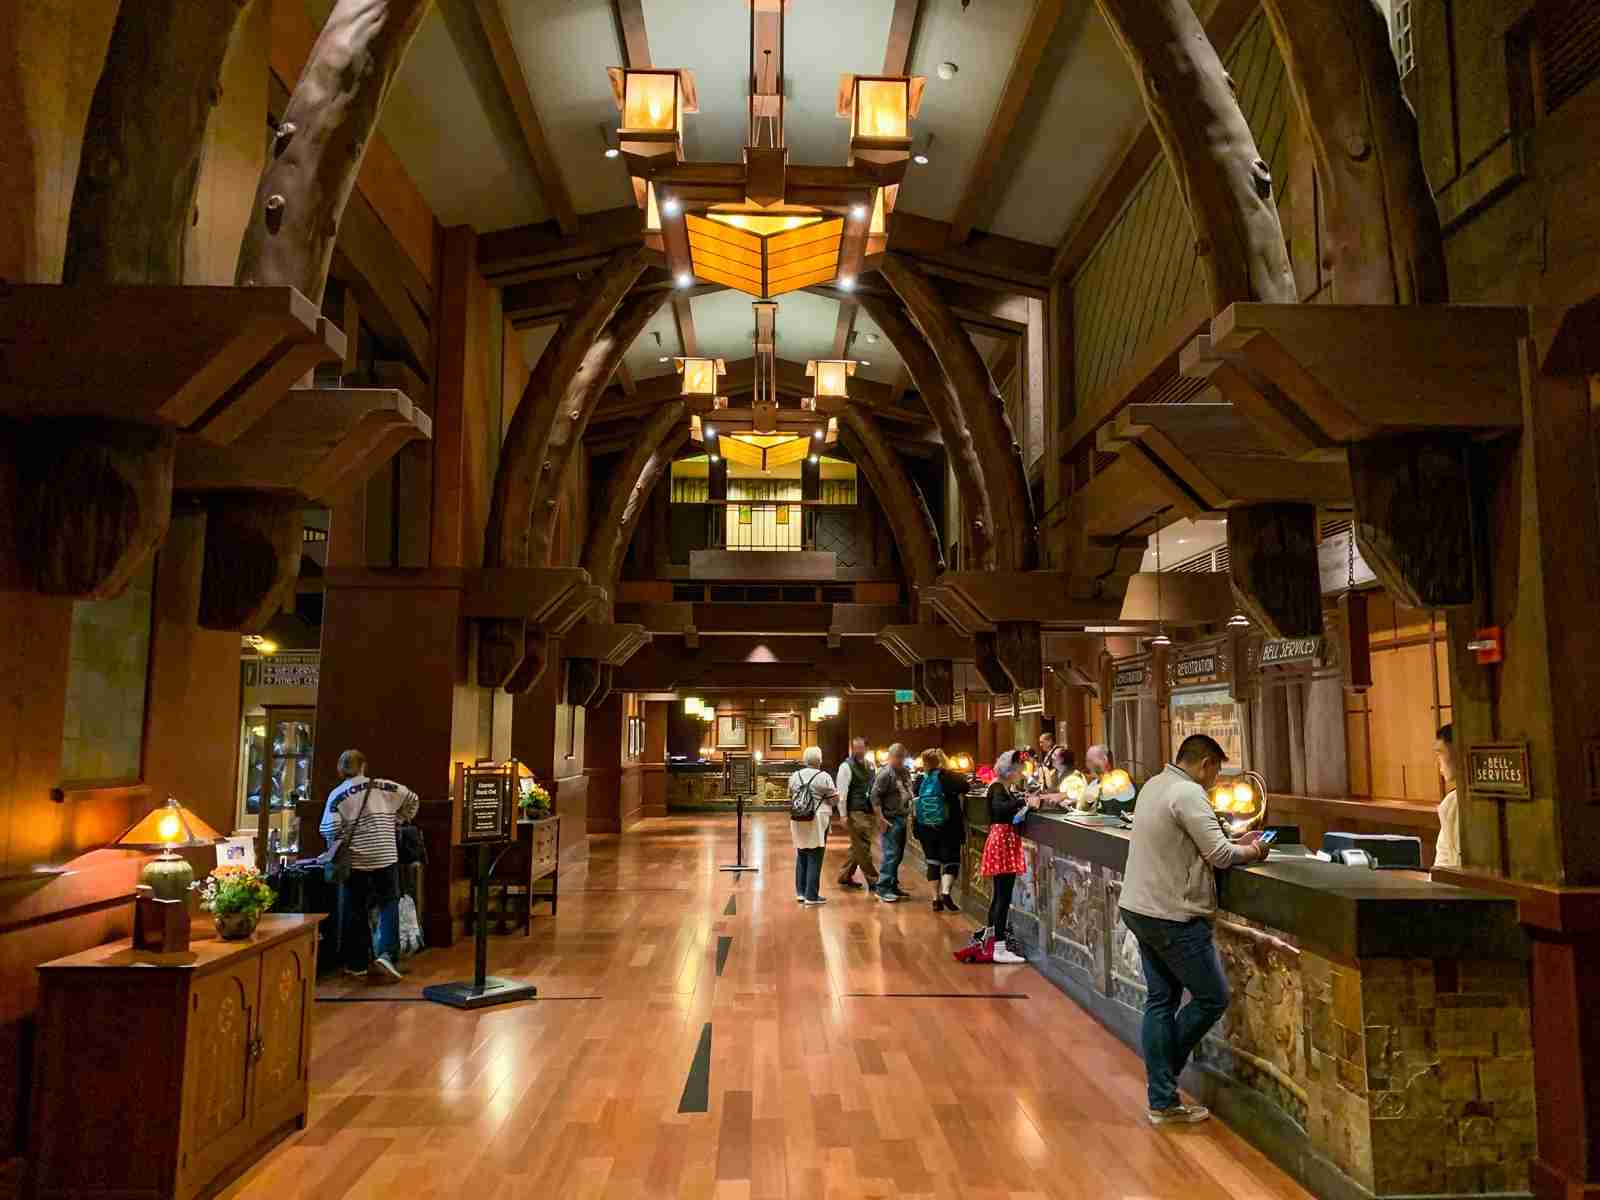 Disneyland Grand Californian Hotel Check In